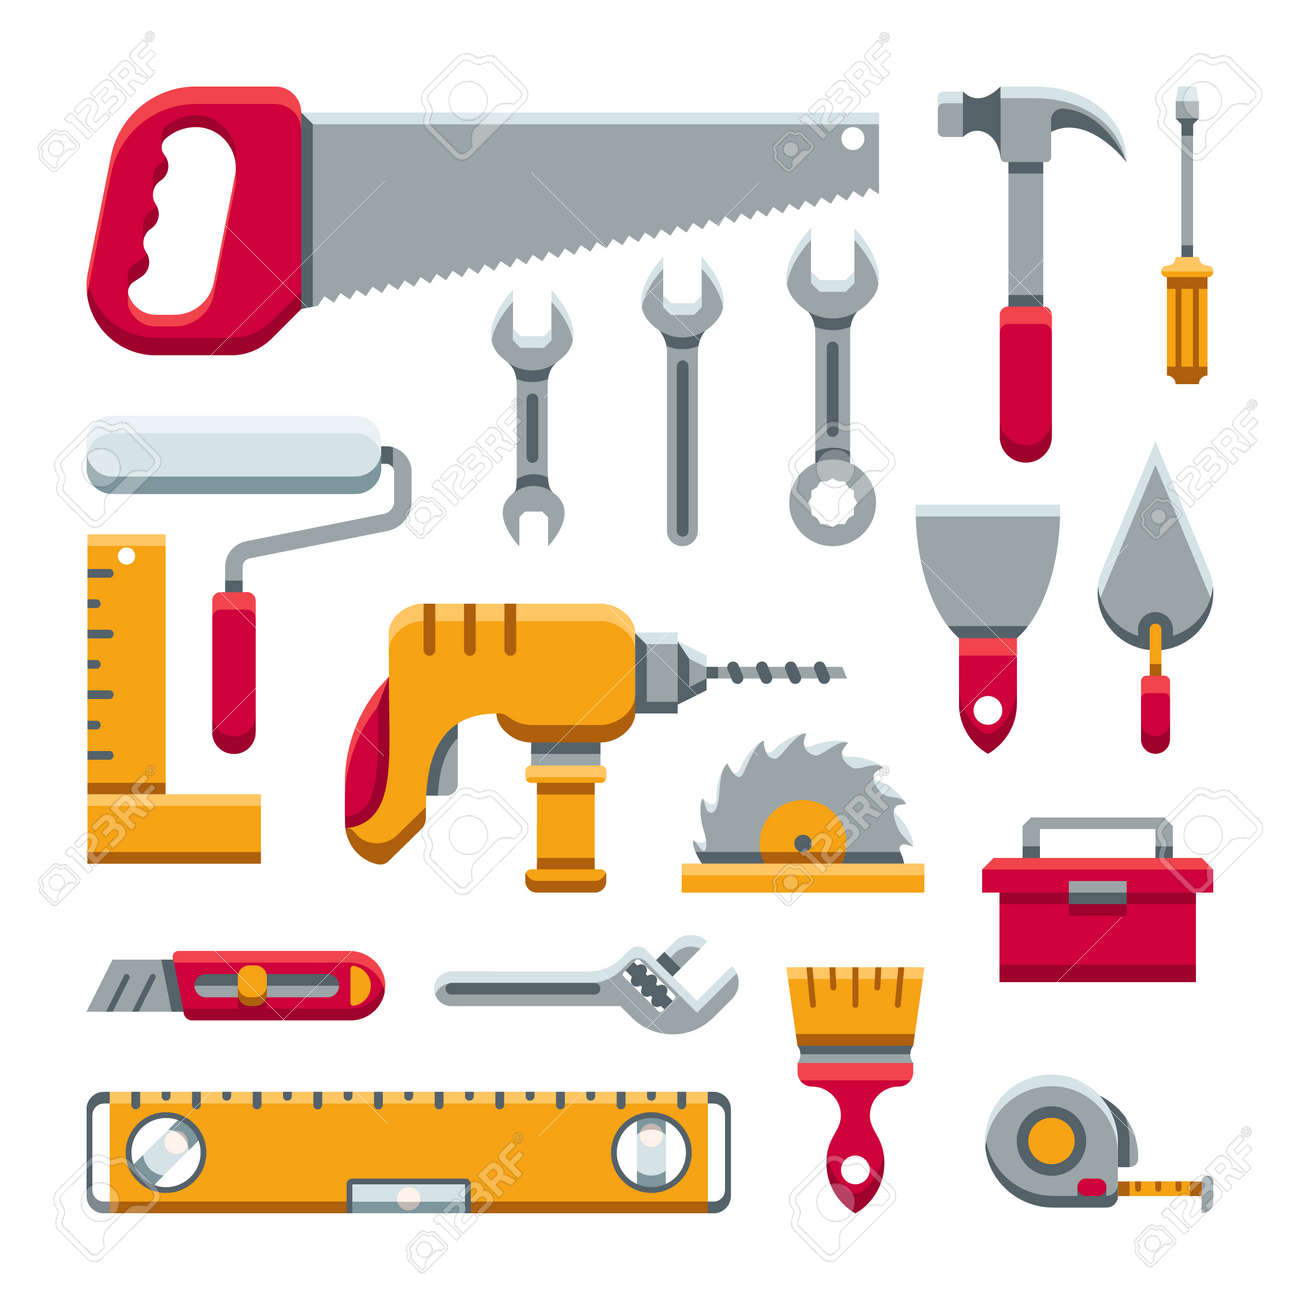 Hardware industrial tools kit flat vector icons. Set of tools and work equipment illustration - 165867075